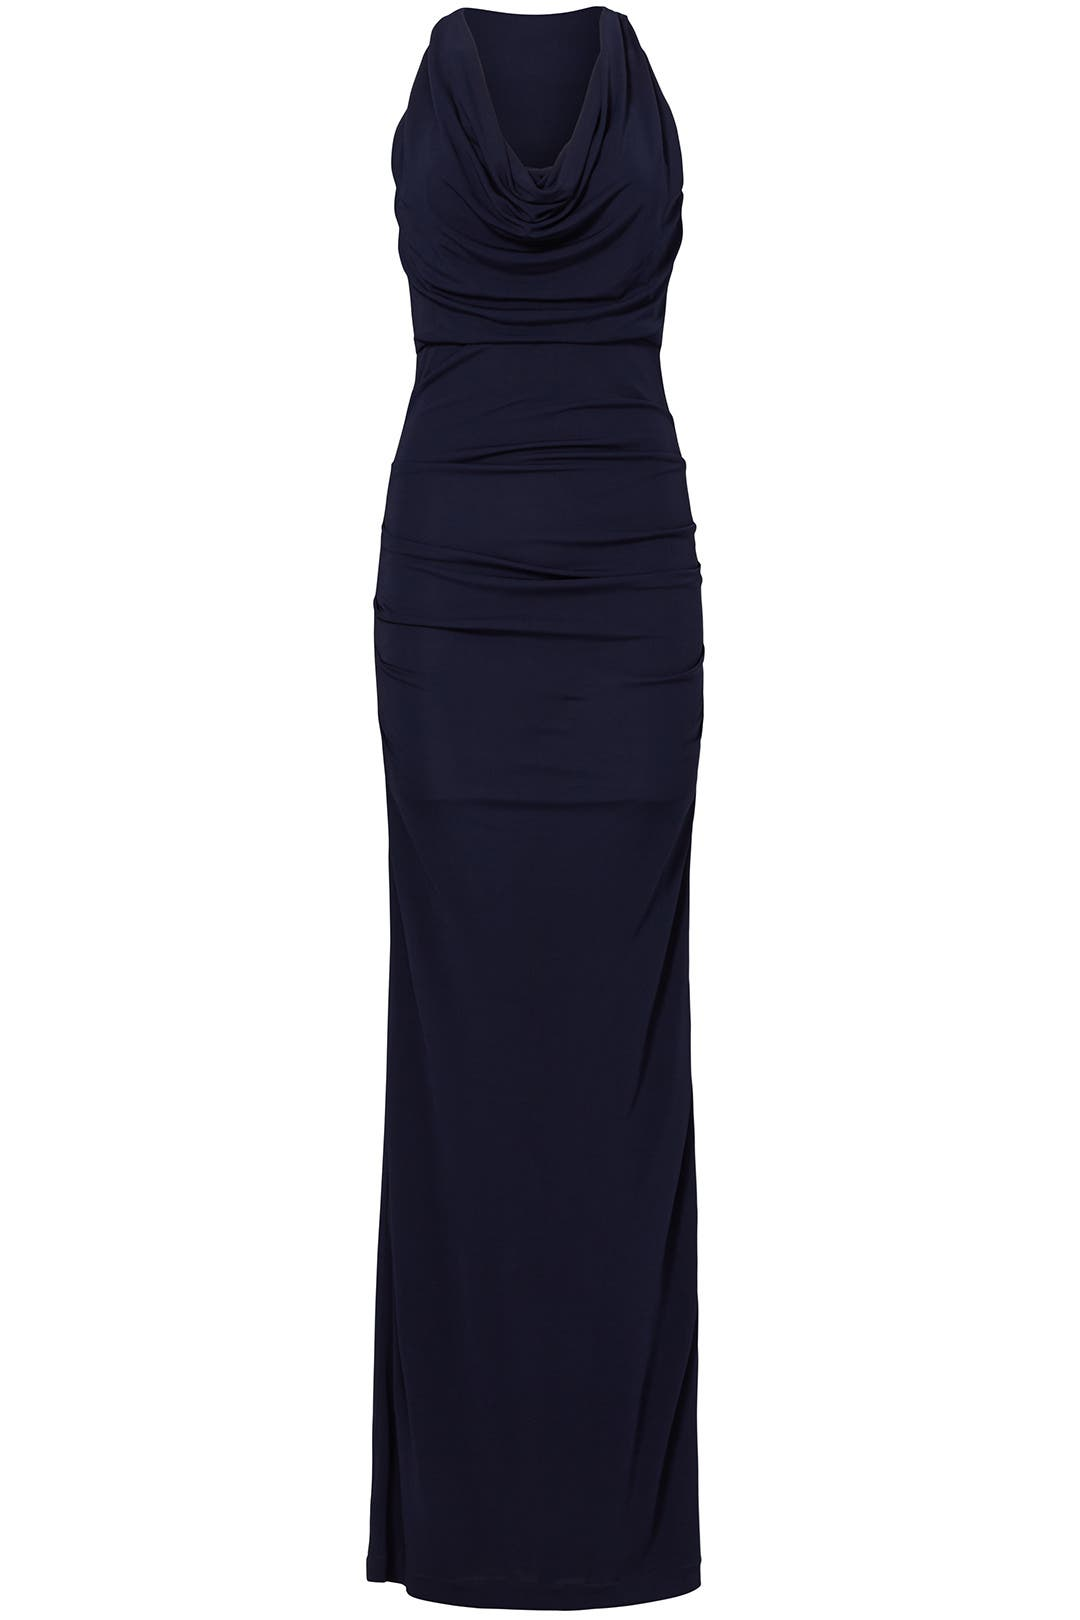 Navy Column Gown by Cut 25 for $70 - $100 | Rent the Runway